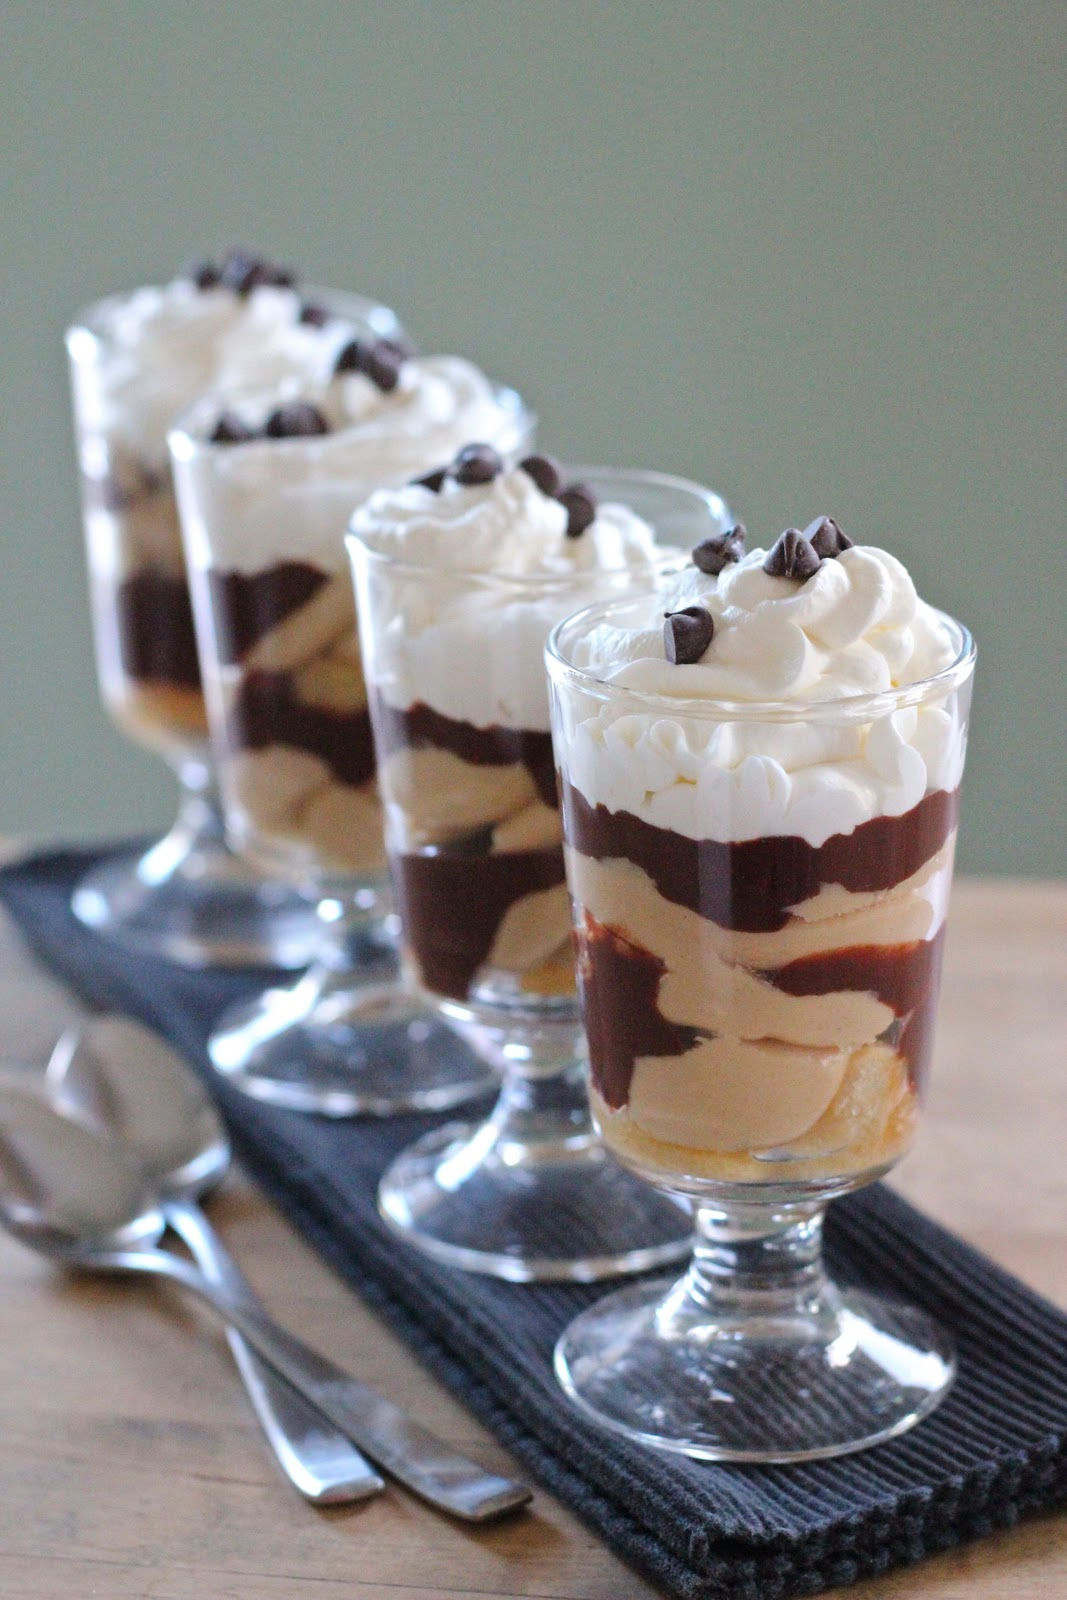 Peanut butter and chocolate parfaits | Eat Good 4 Life